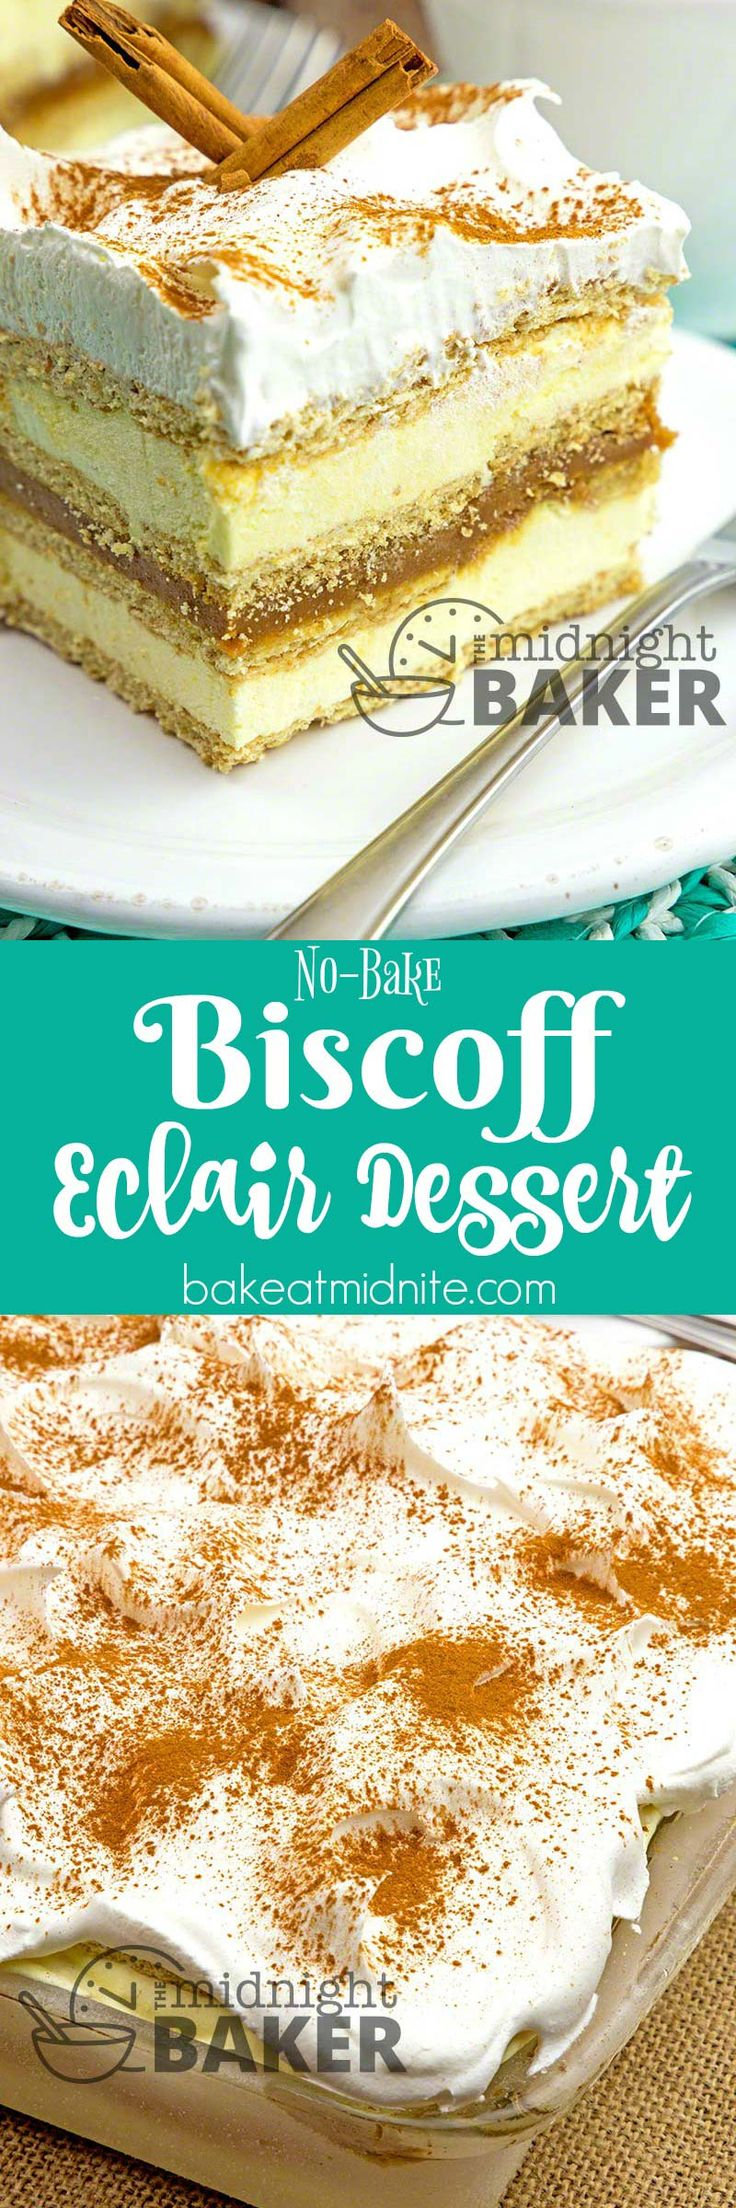 Get the flavor of delicious Biscoff in this easy no-bake dessert. Peanut butter or Nutella may be substituted.